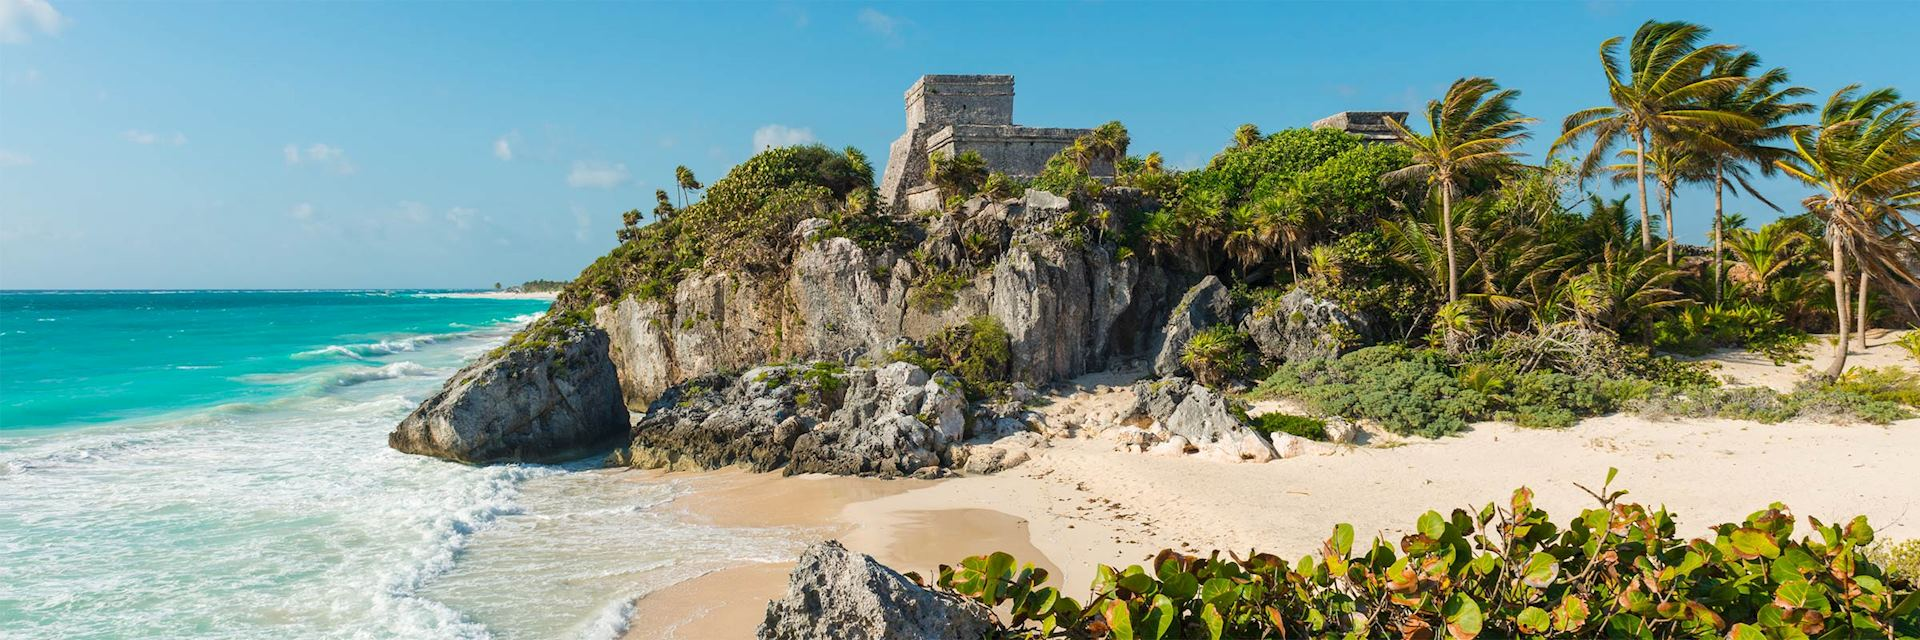 Tulum beach on the Mayan Riviera